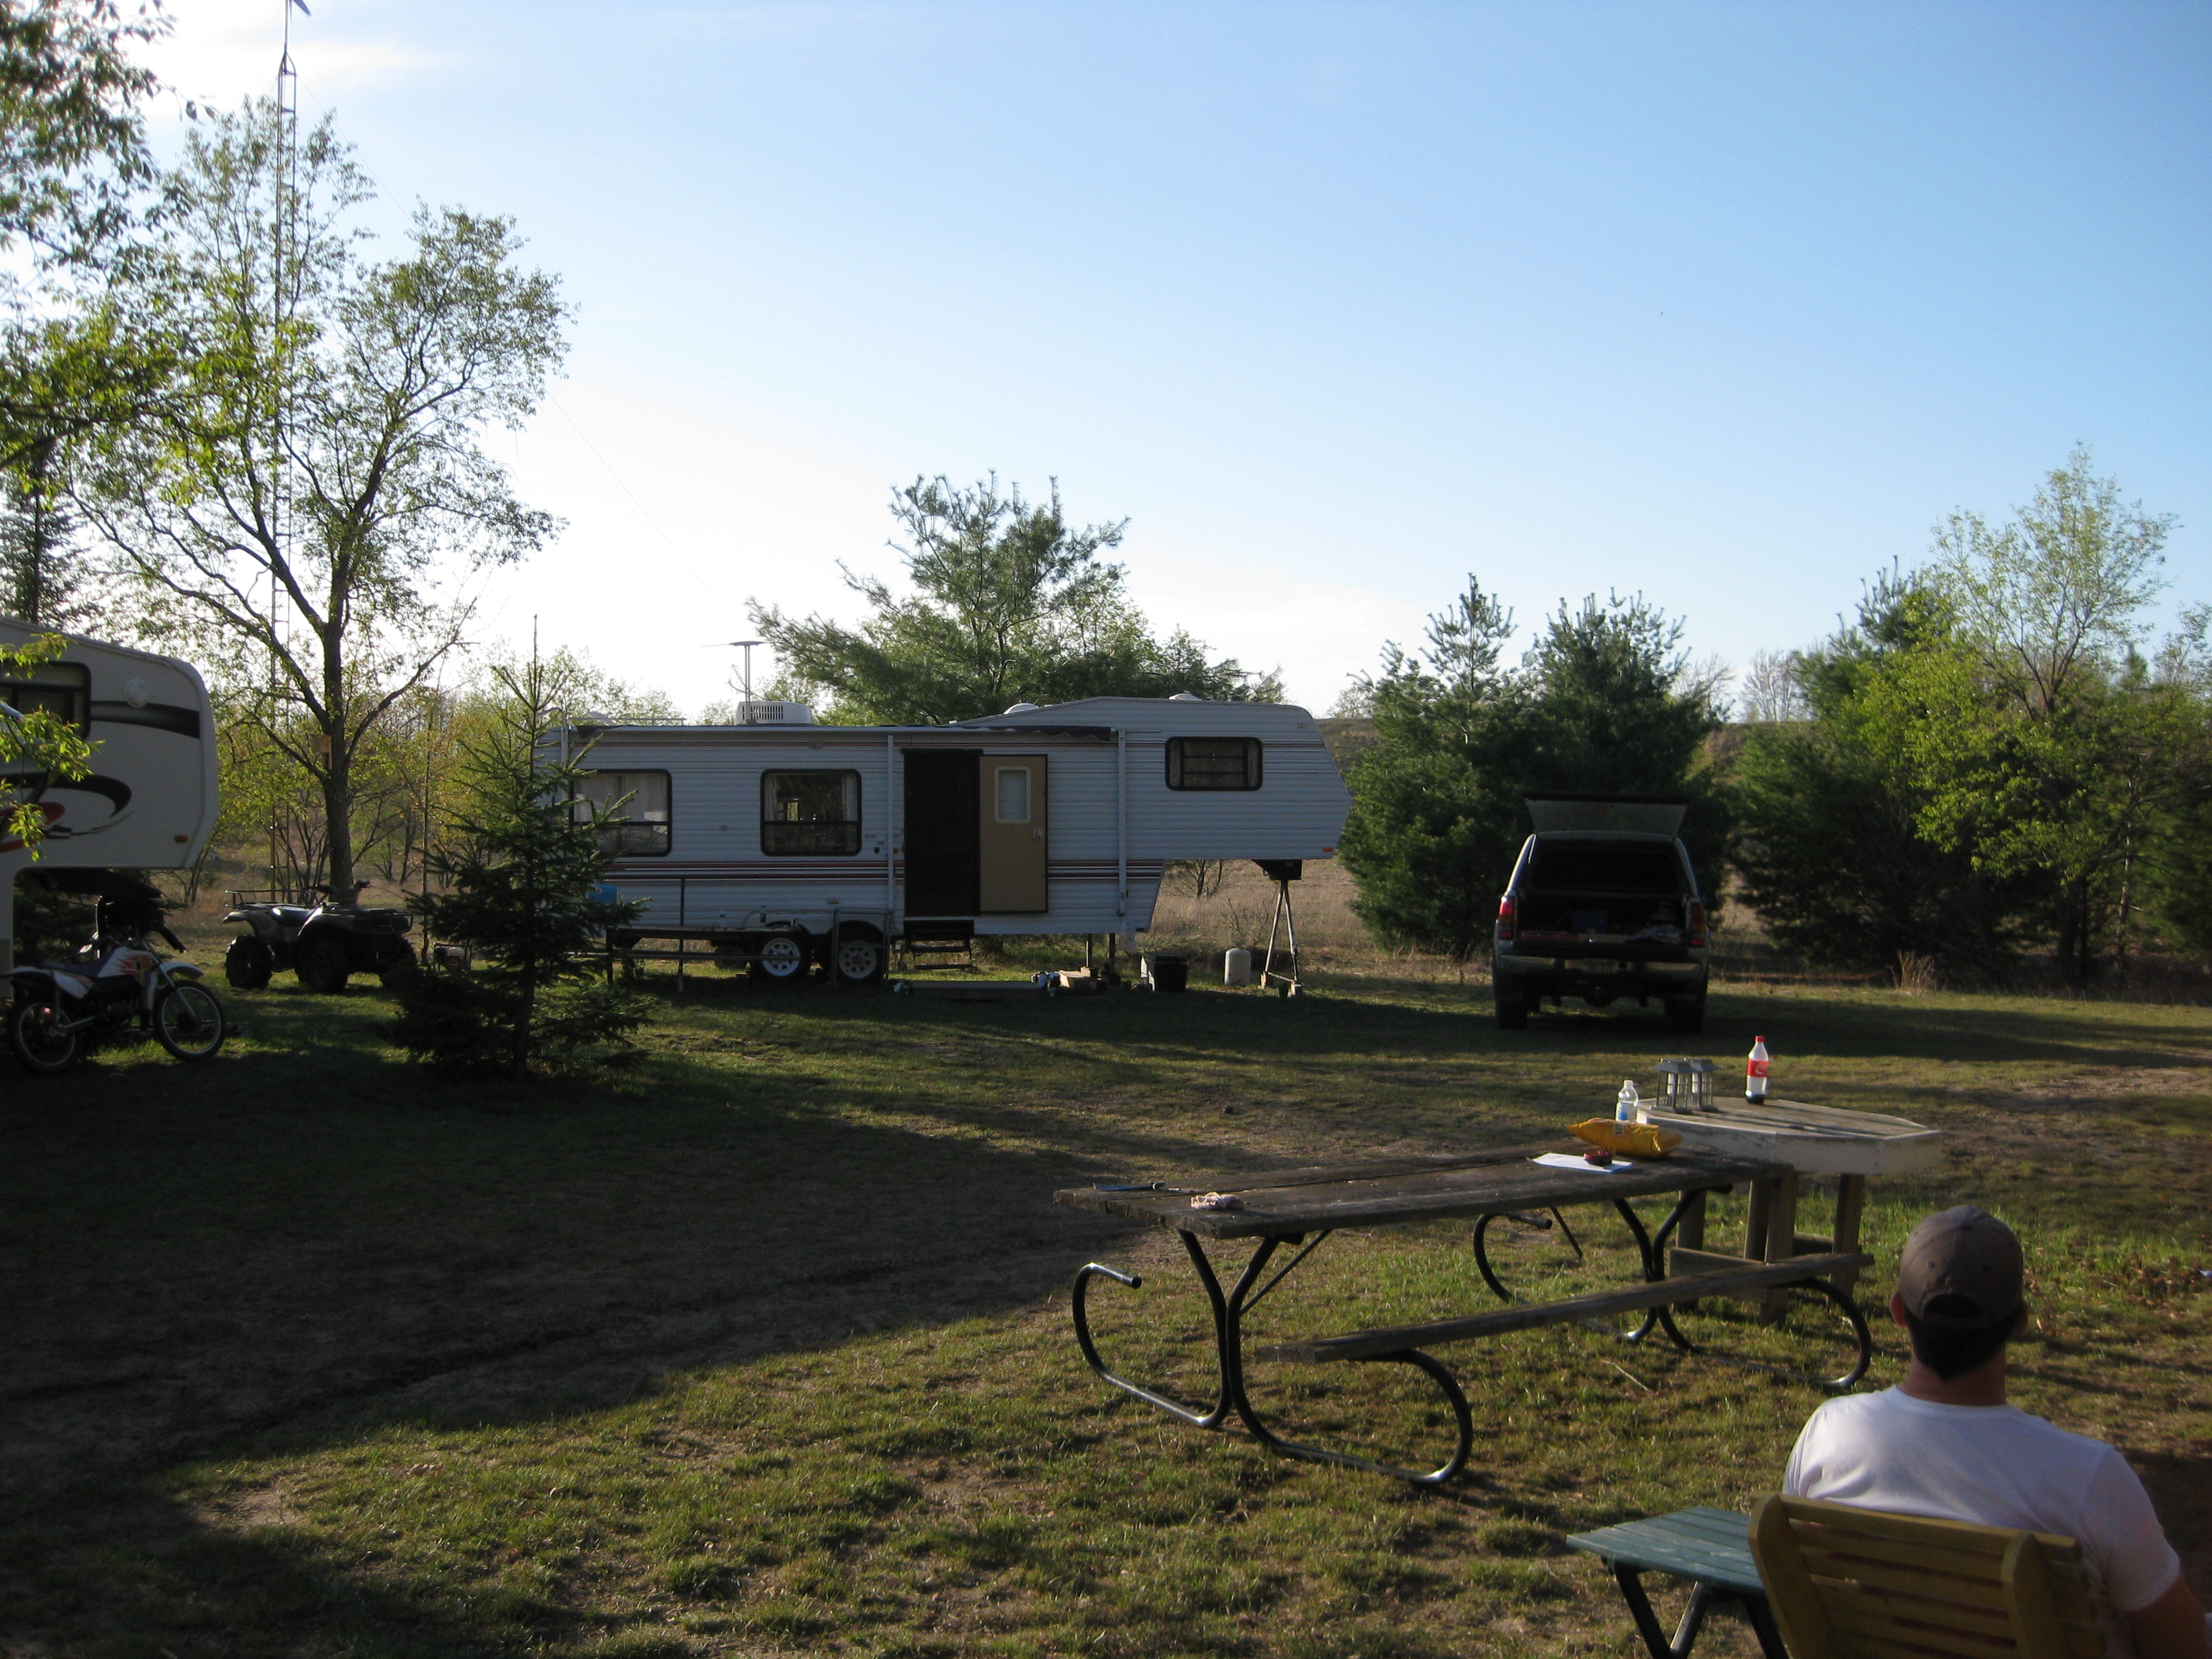 Camping in Wolverine, MI 2012